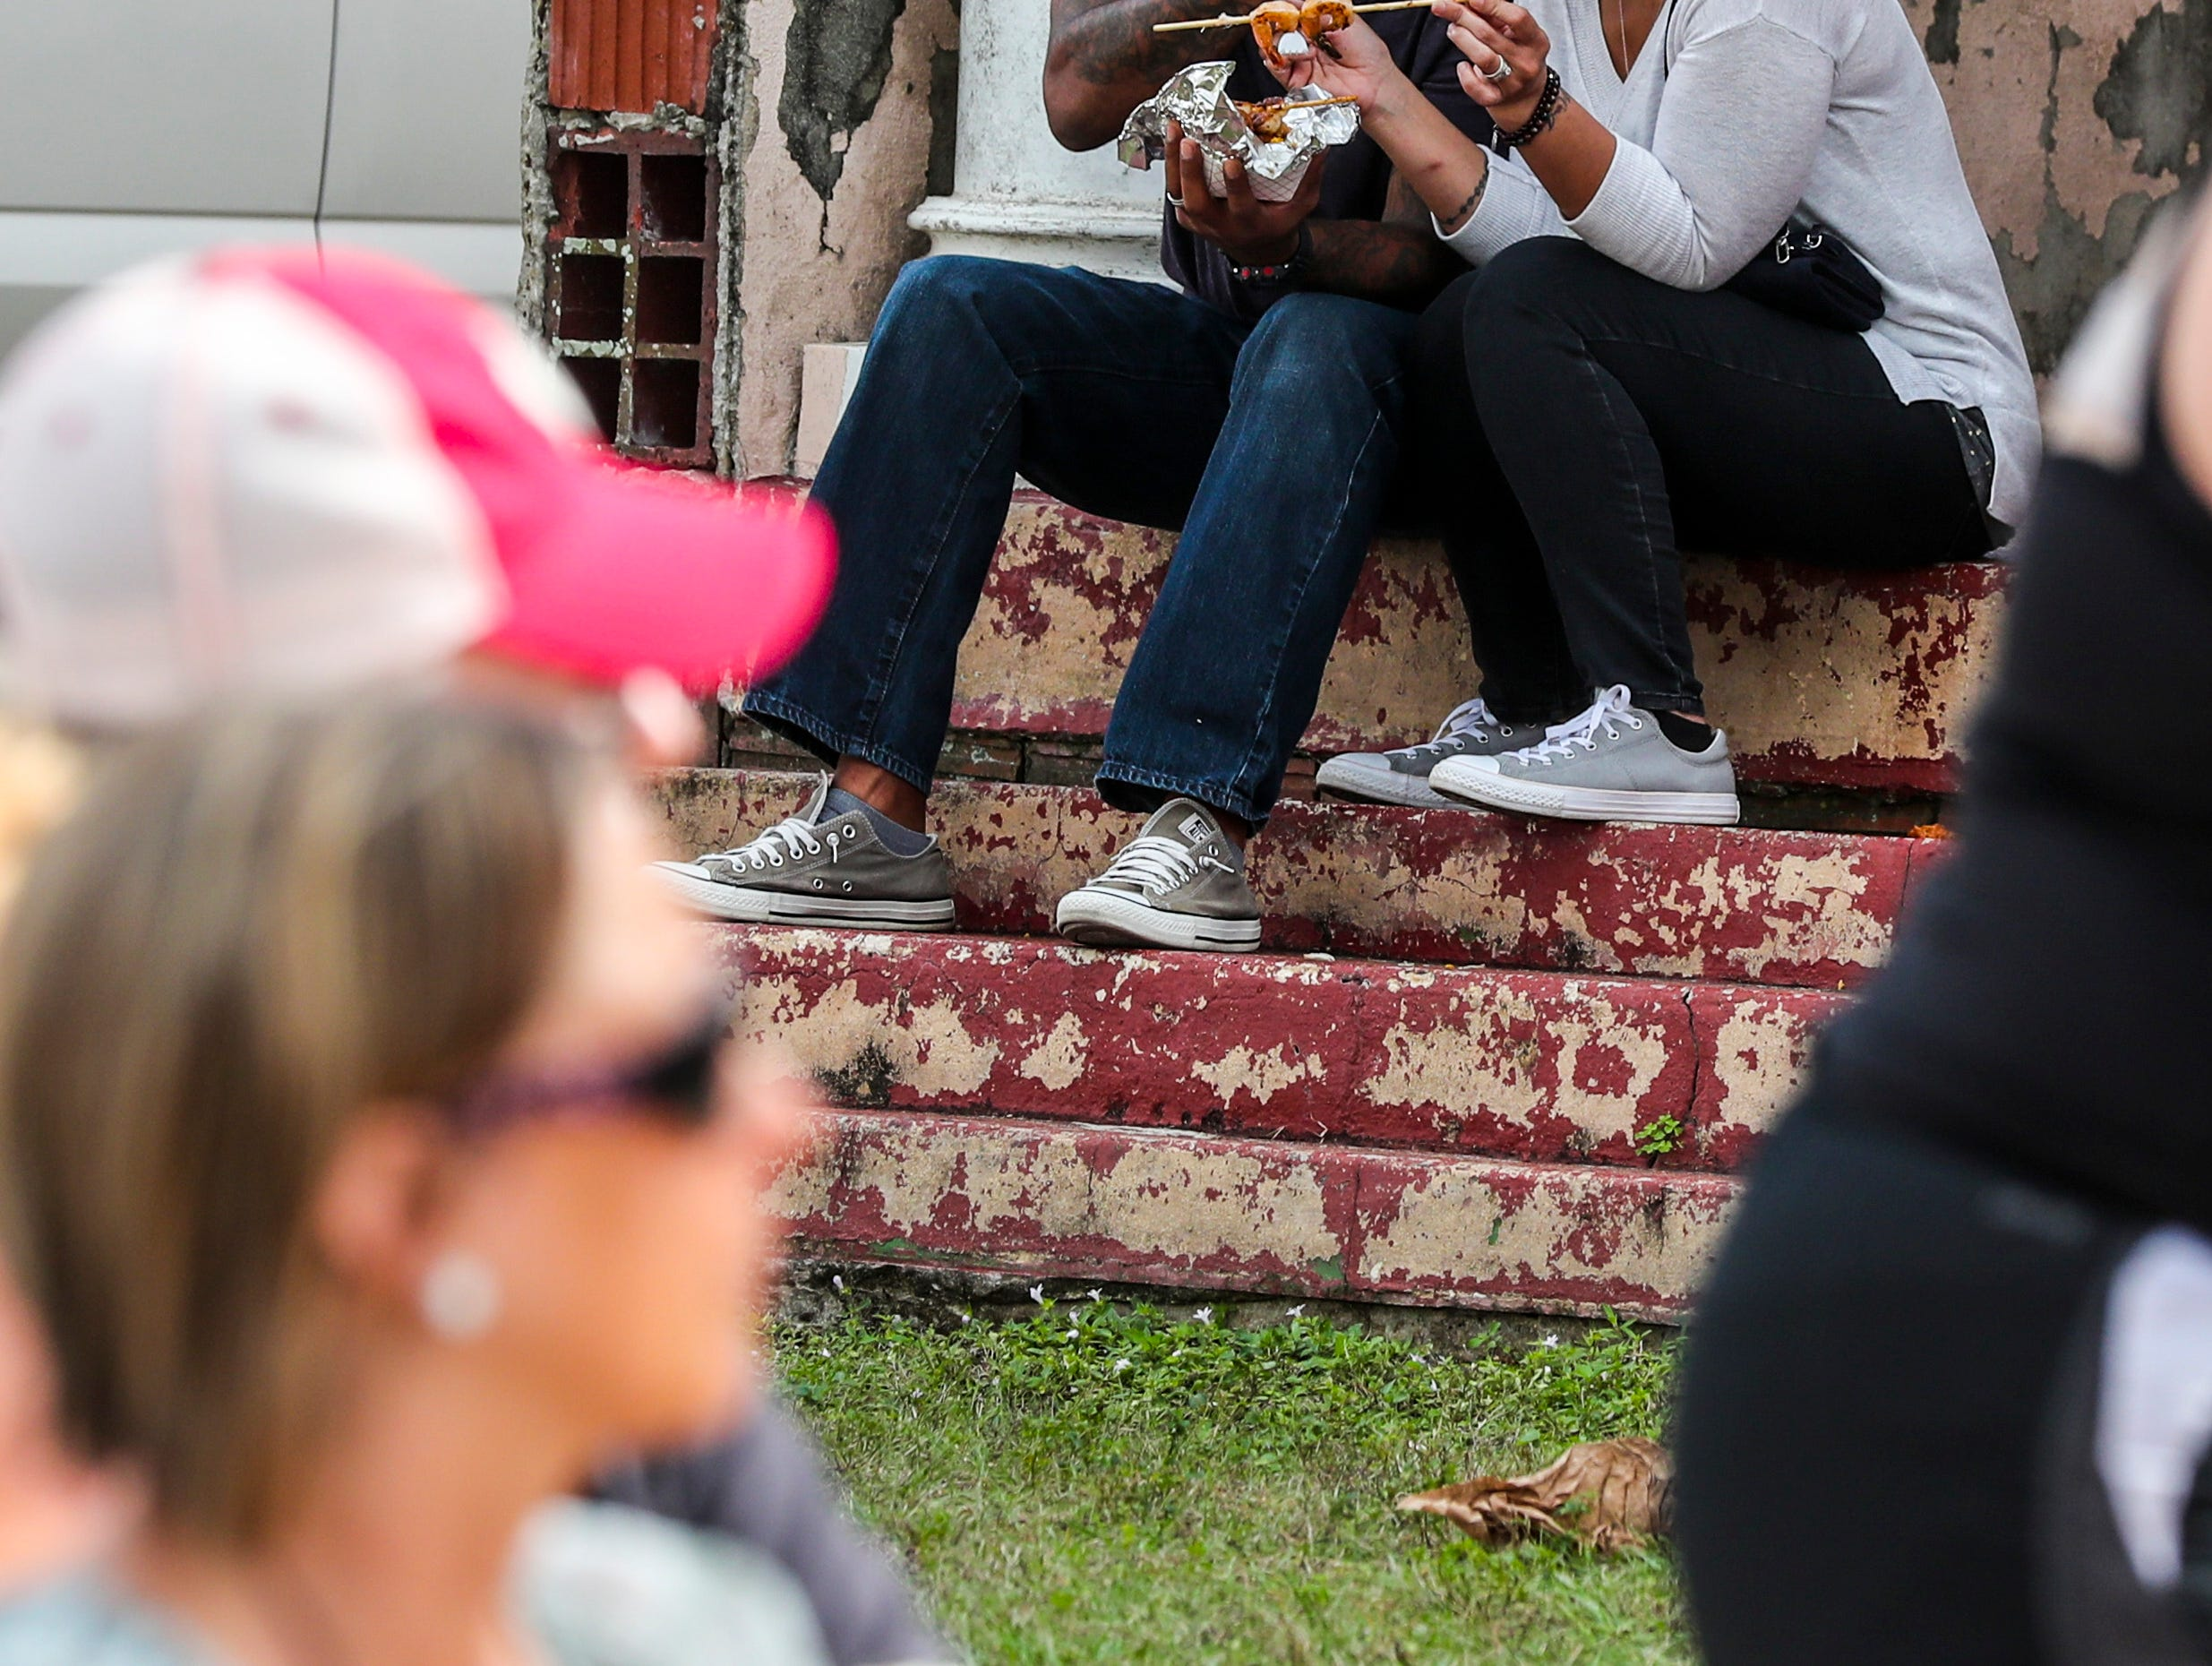 Fort Myers Seafood and Music Festival is a new event for downtown Fort Myers that featured live bands, seafood dishes from vendors and local restaurants and a small marketplace with arts, crafts and more items.